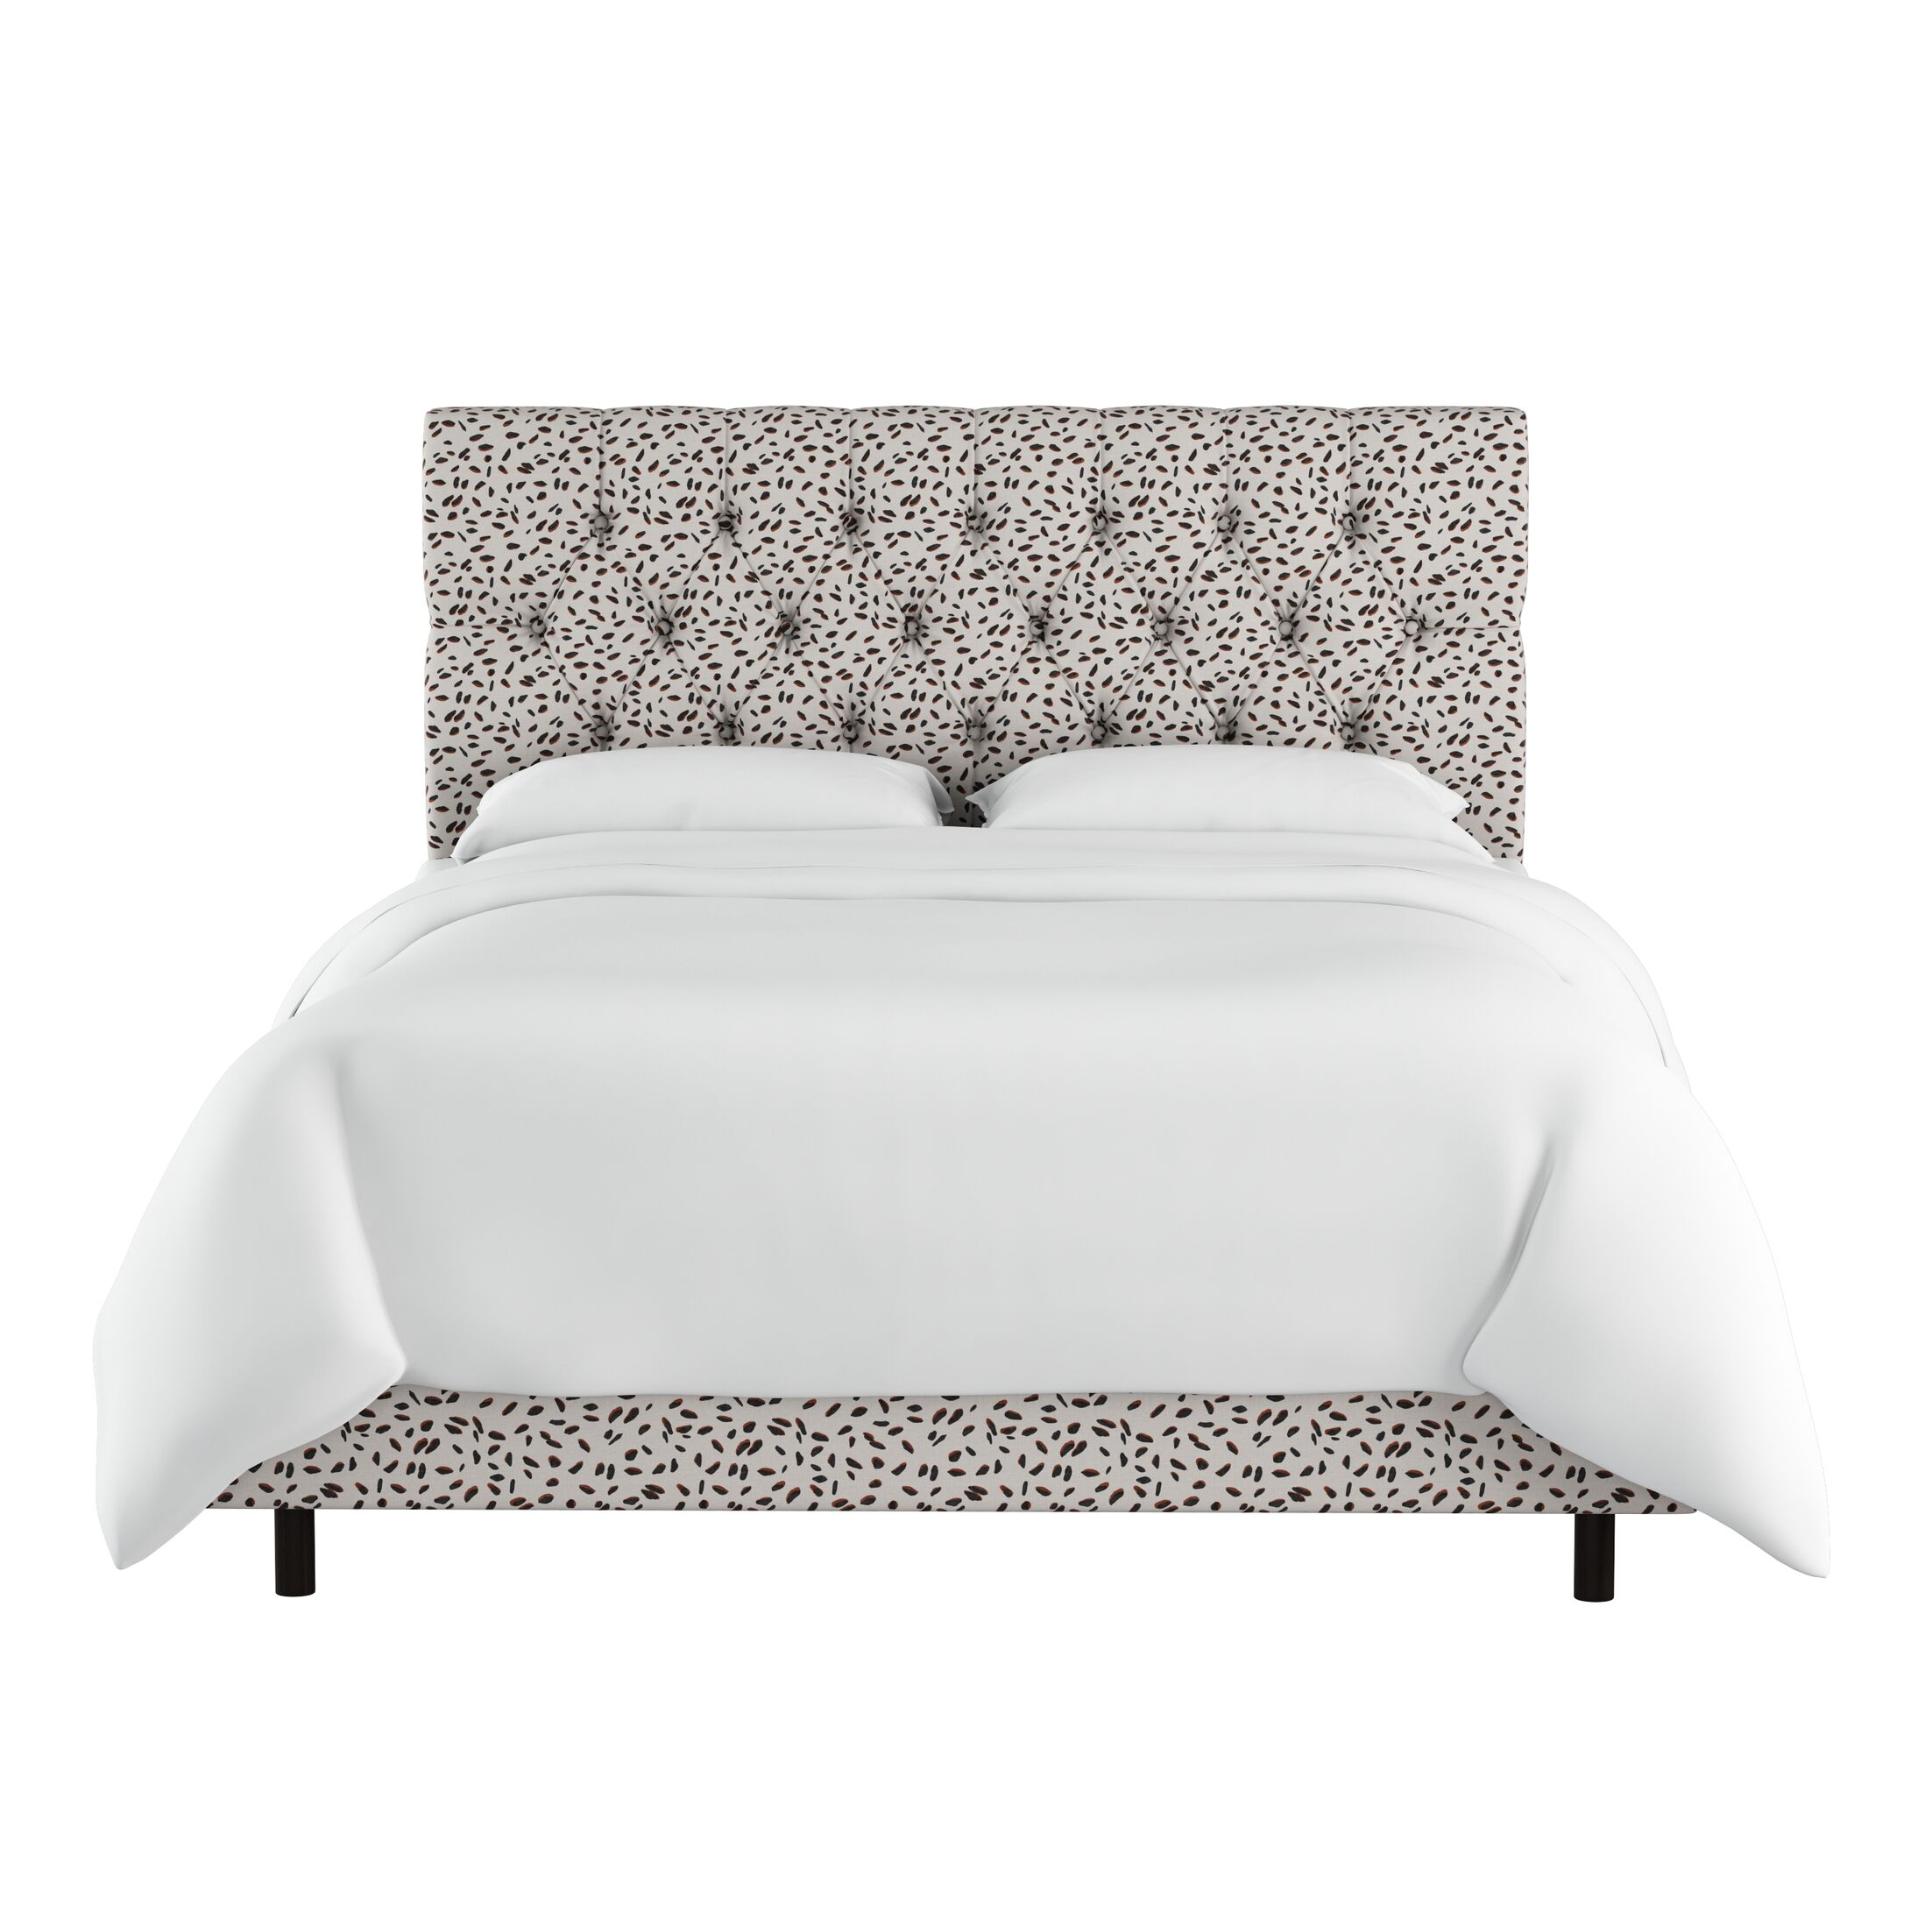 Marksbury Tufted Upholstered Panel Bed Size: Queen